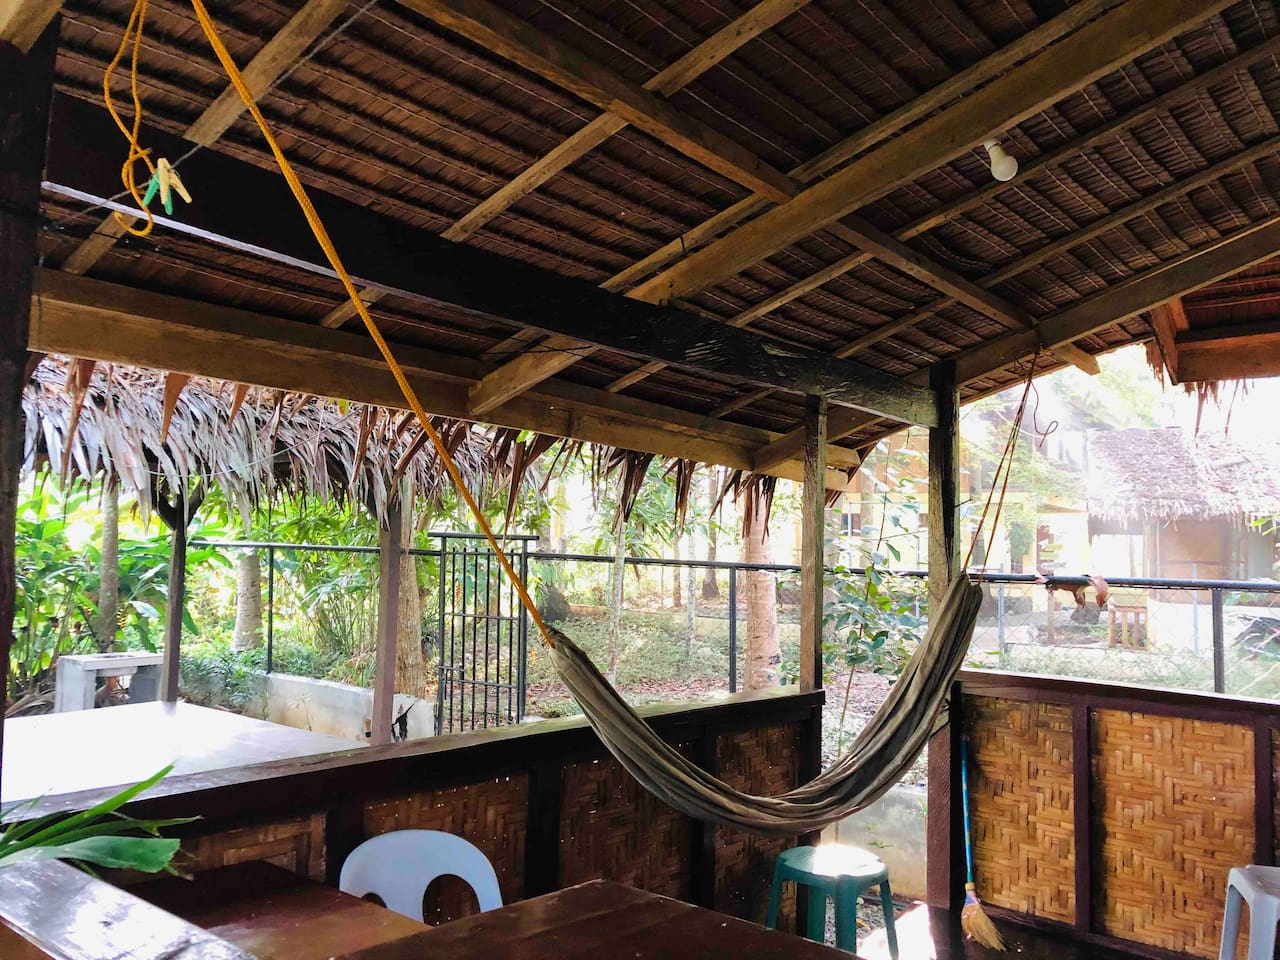 Front porch veranda with seating and a Large comfortable Hammock (duyan))